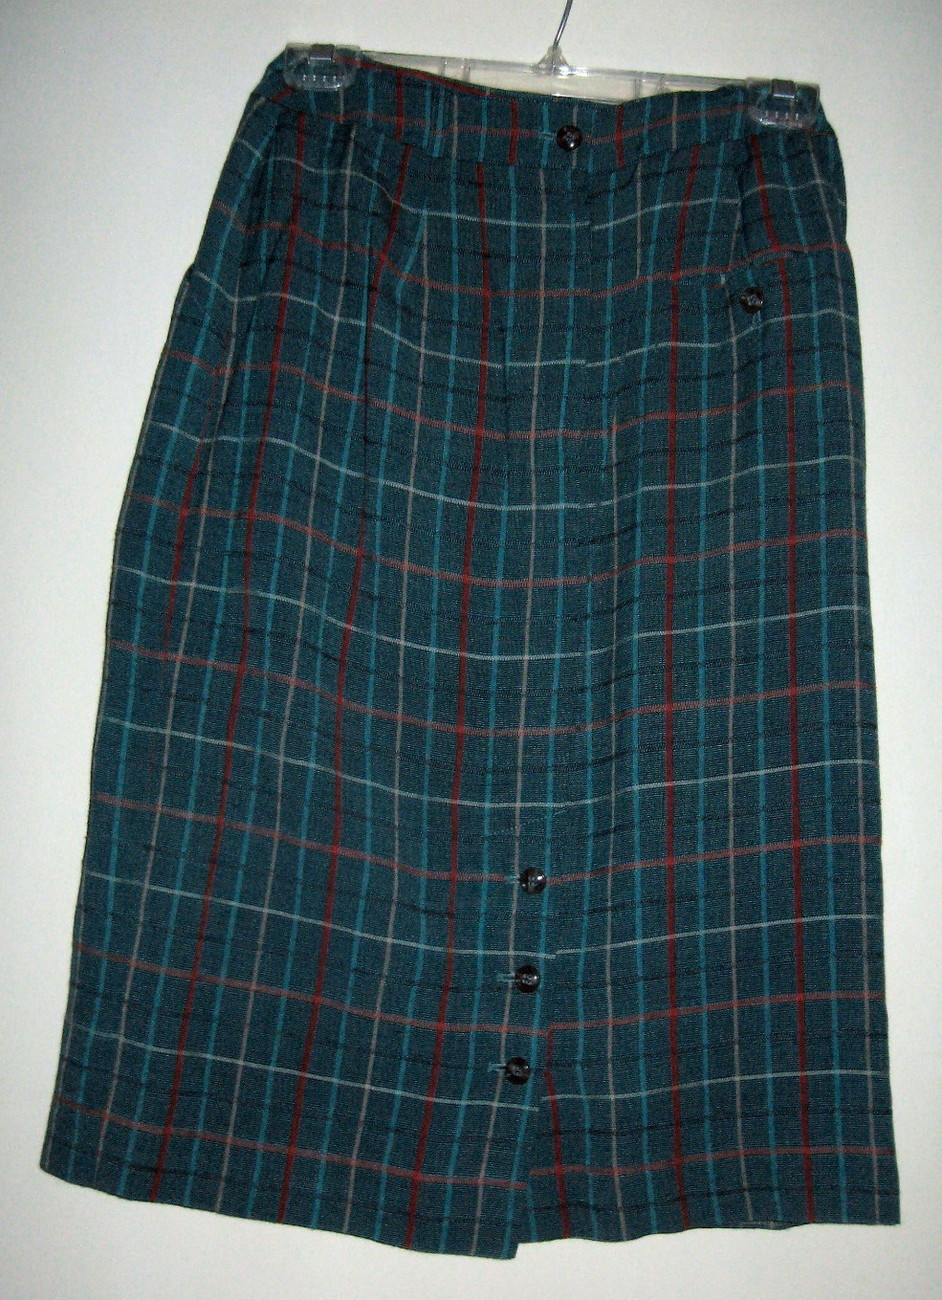 LADIES SKIRT BY LIZ CLAIBORNE, SIZE 8, FULLY LINED